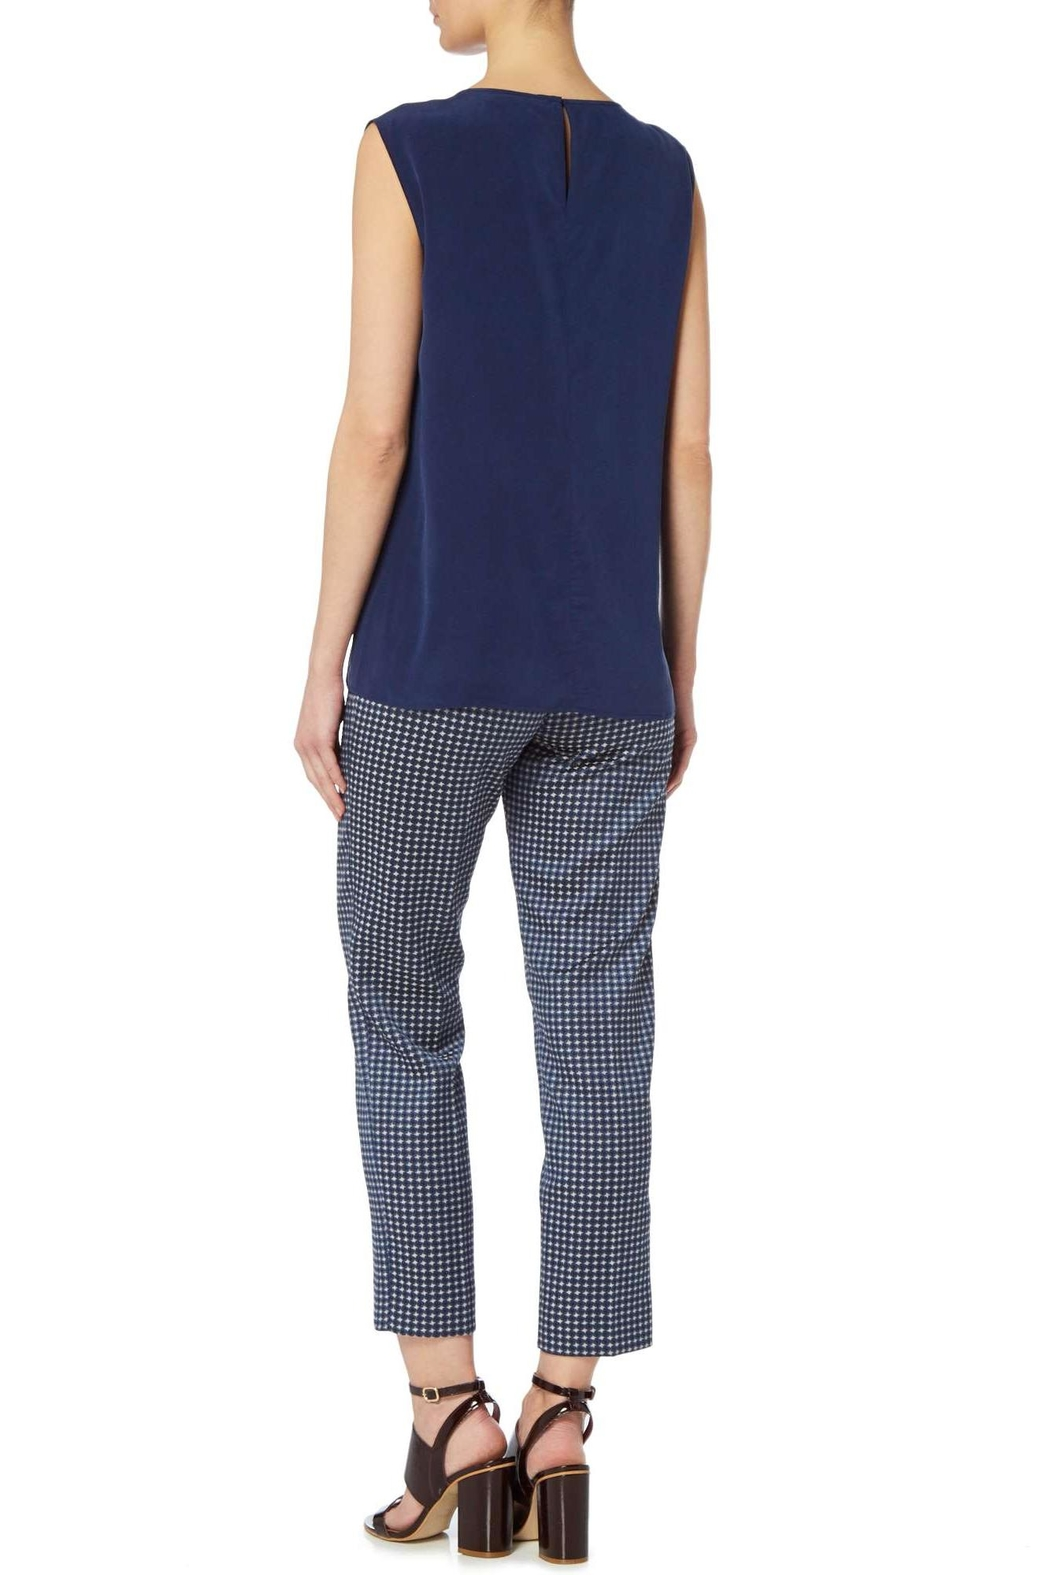 Max Mara Jacquard Navy Trousers - Side Cropped Image